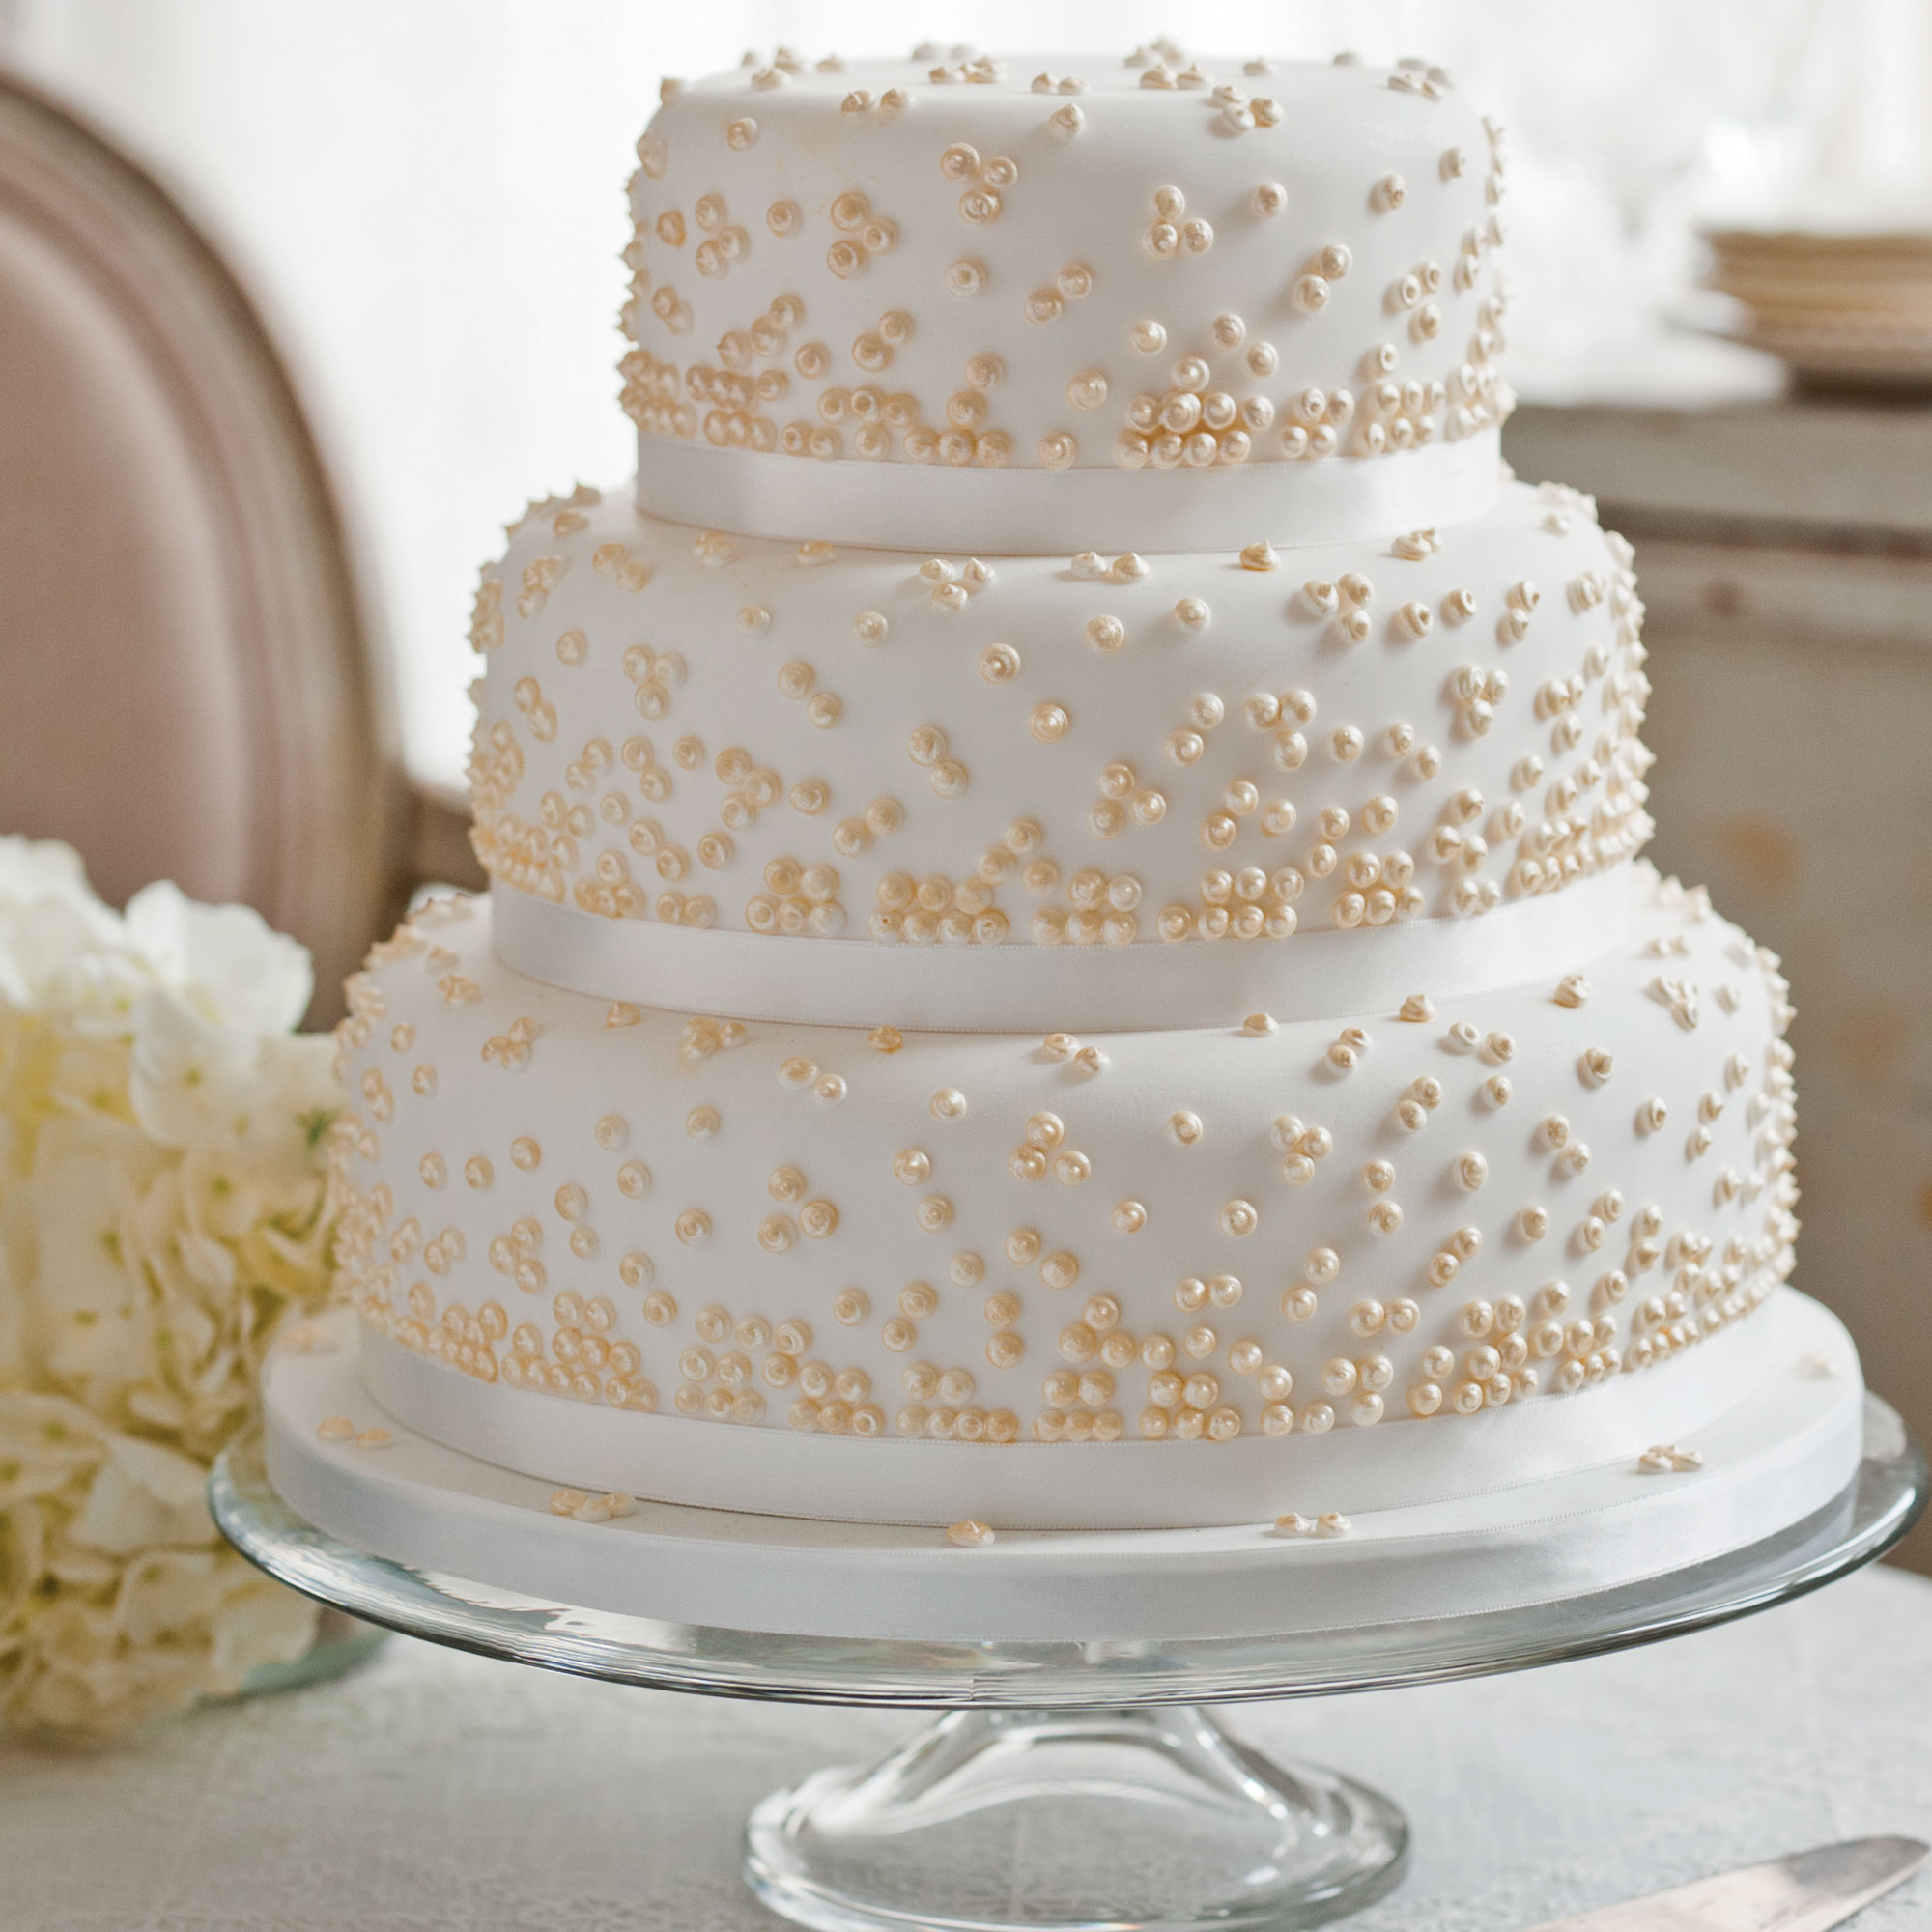 Traditional Jewish Wedding Cake Recipe